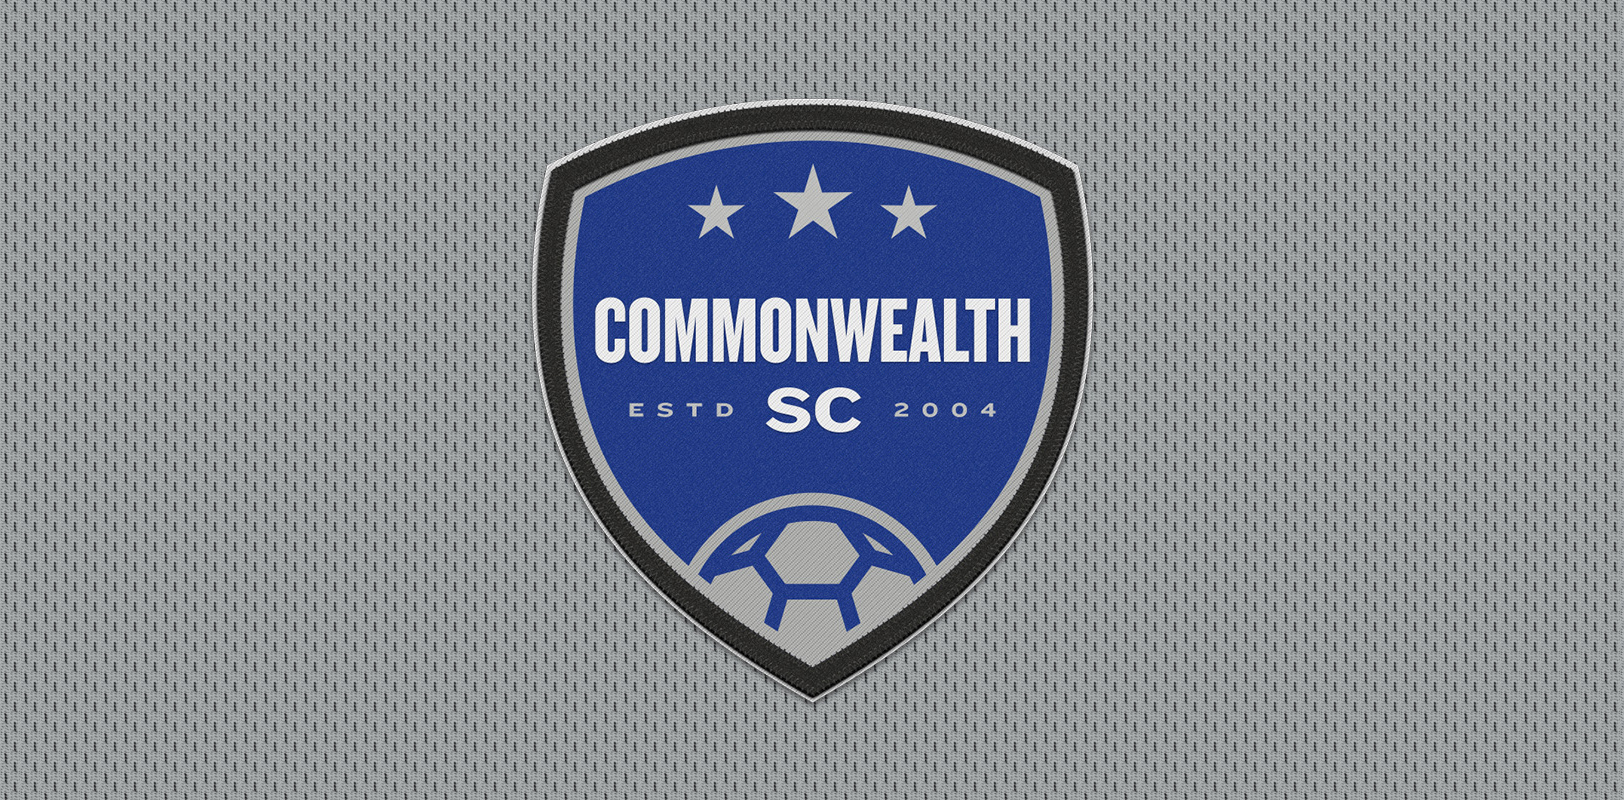 Sports branding for Commonwealth Soccer Club in Lexington, KY